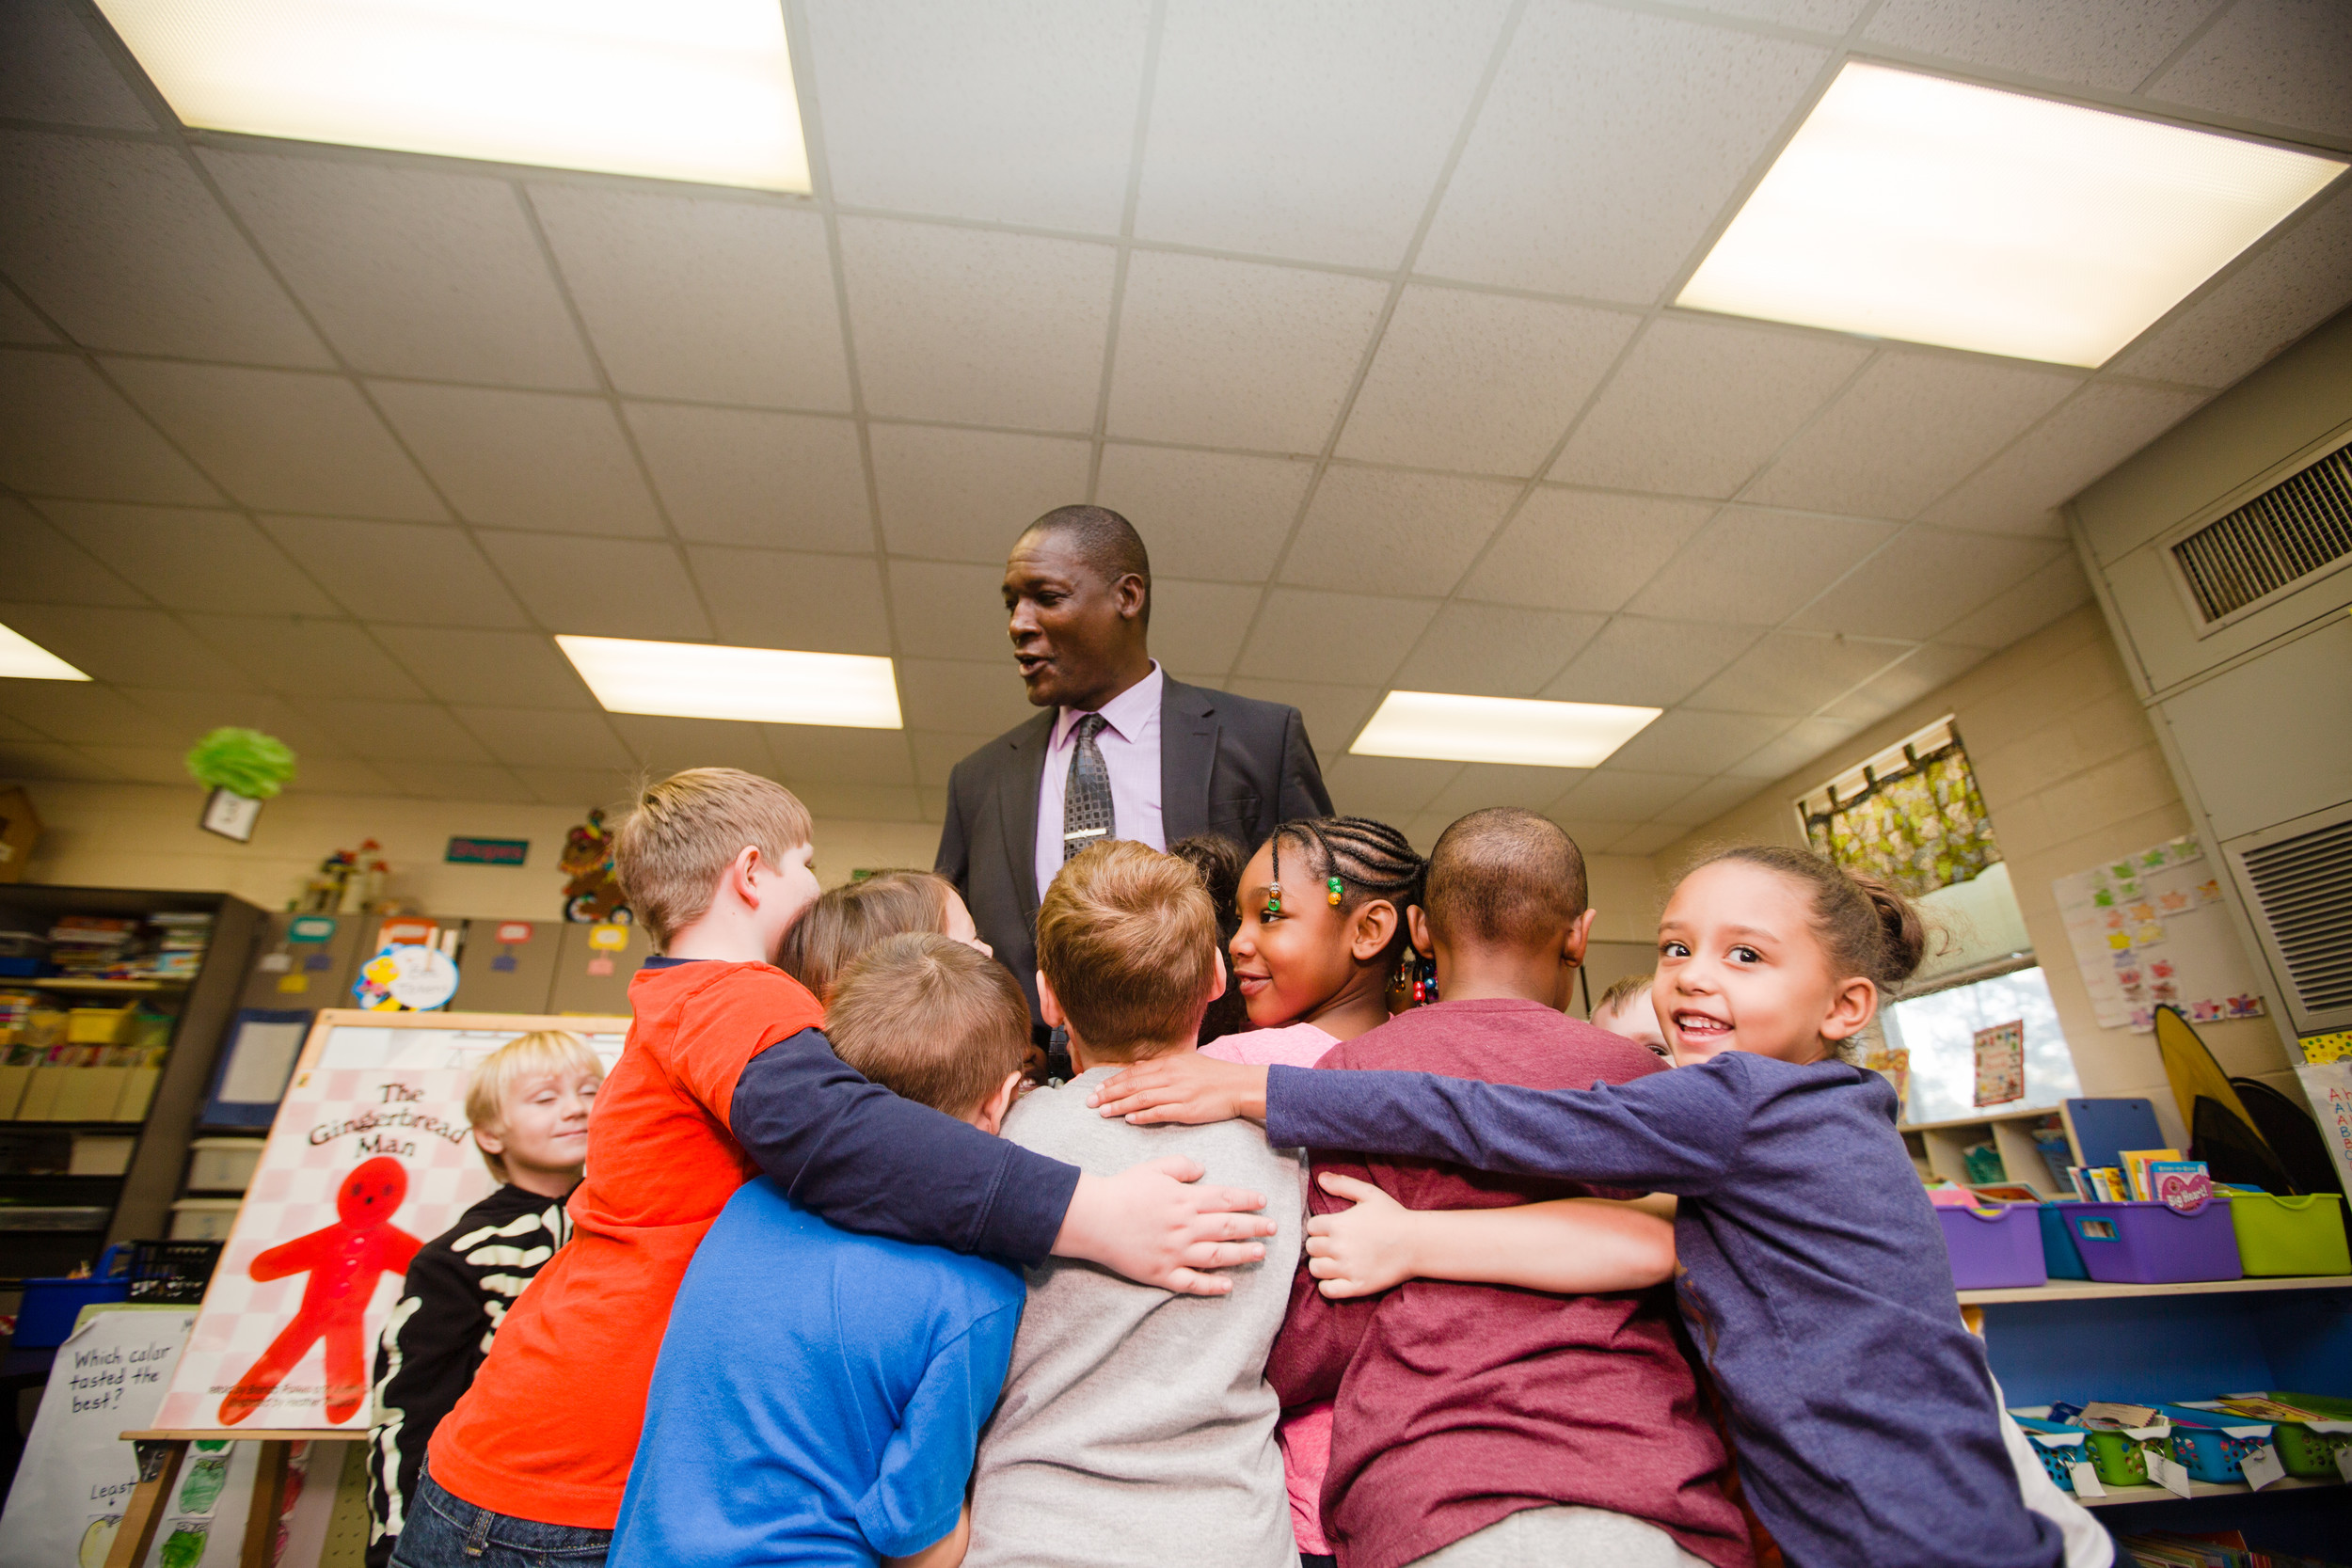 Lefford Fate gets a hug from almost everyone in Stephanie Joye's kindergarten class on Thursday. Fate served as principal for a day at Alice Drive Elementary School.